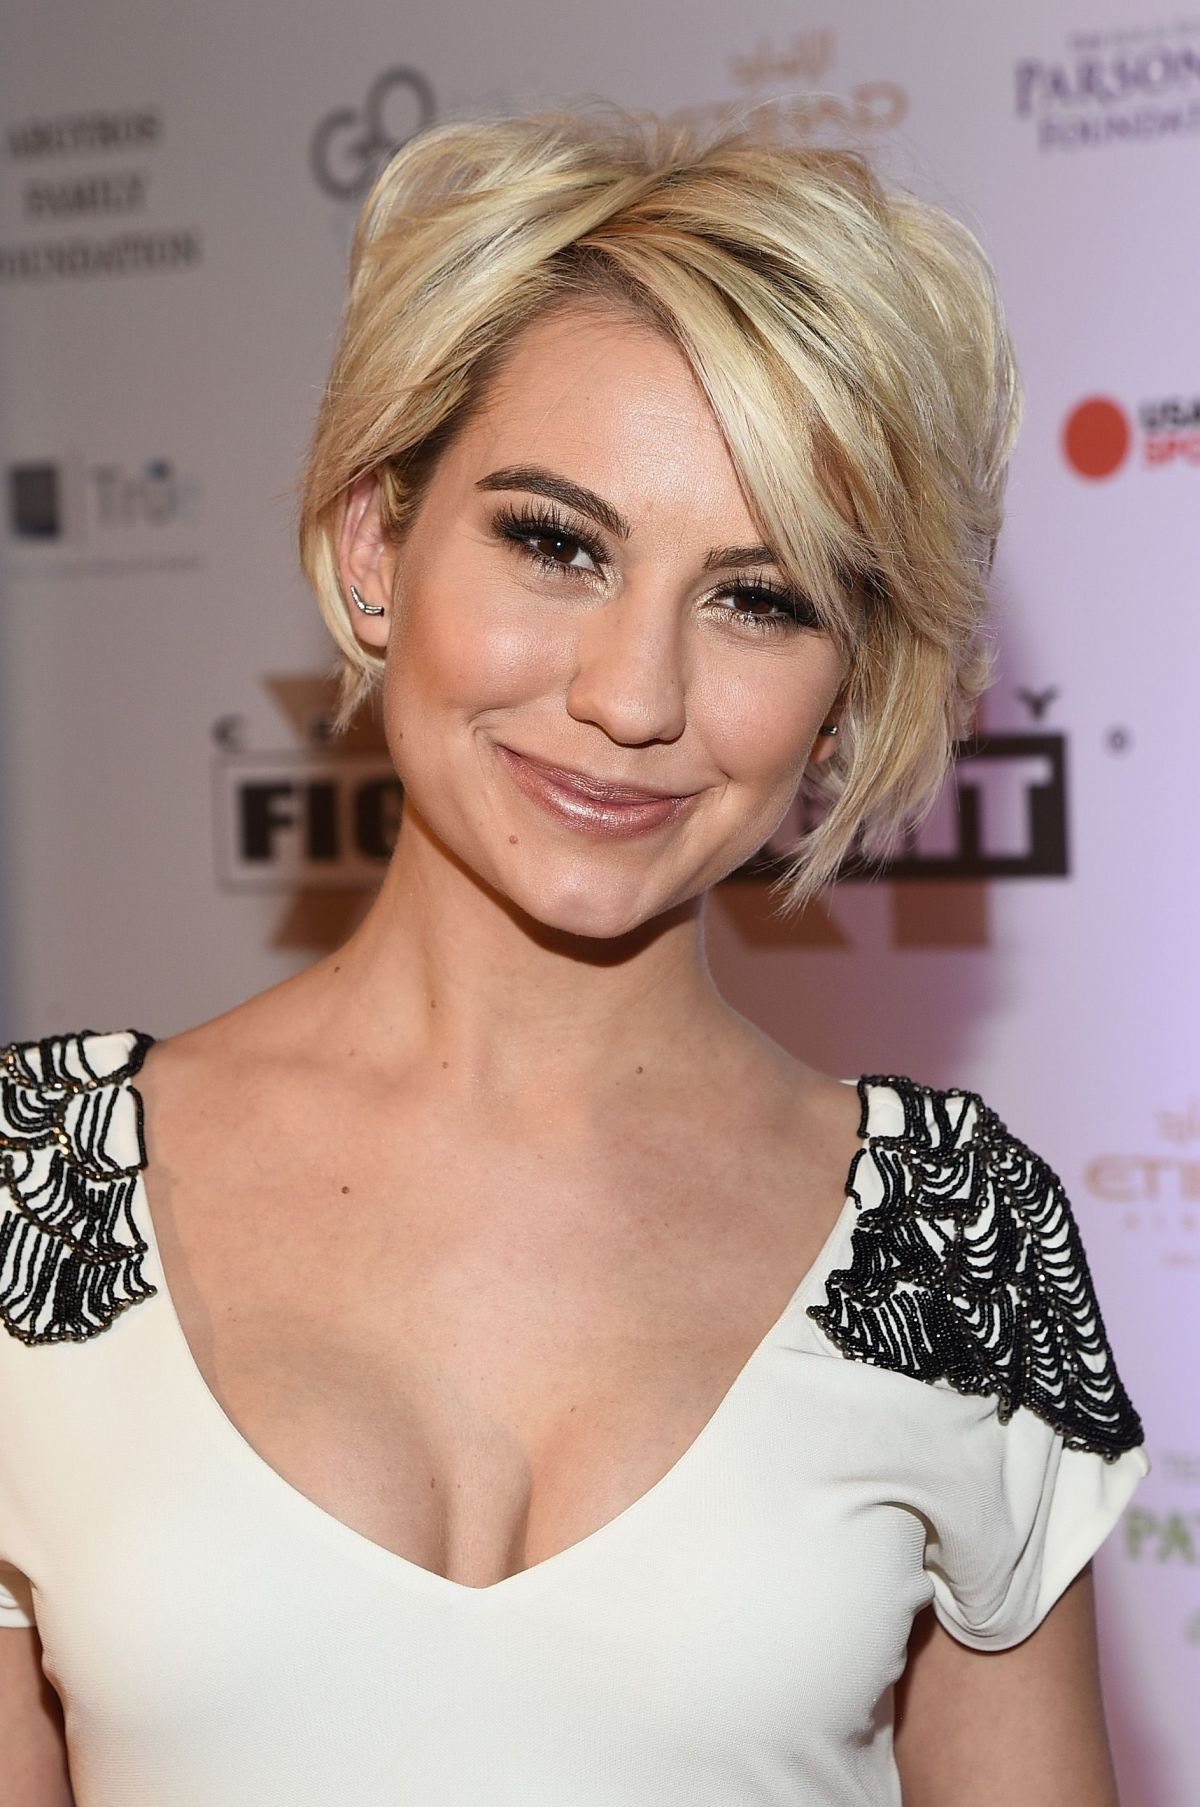 Pictures Of Chelsea Kane Pictures Of Celebrities